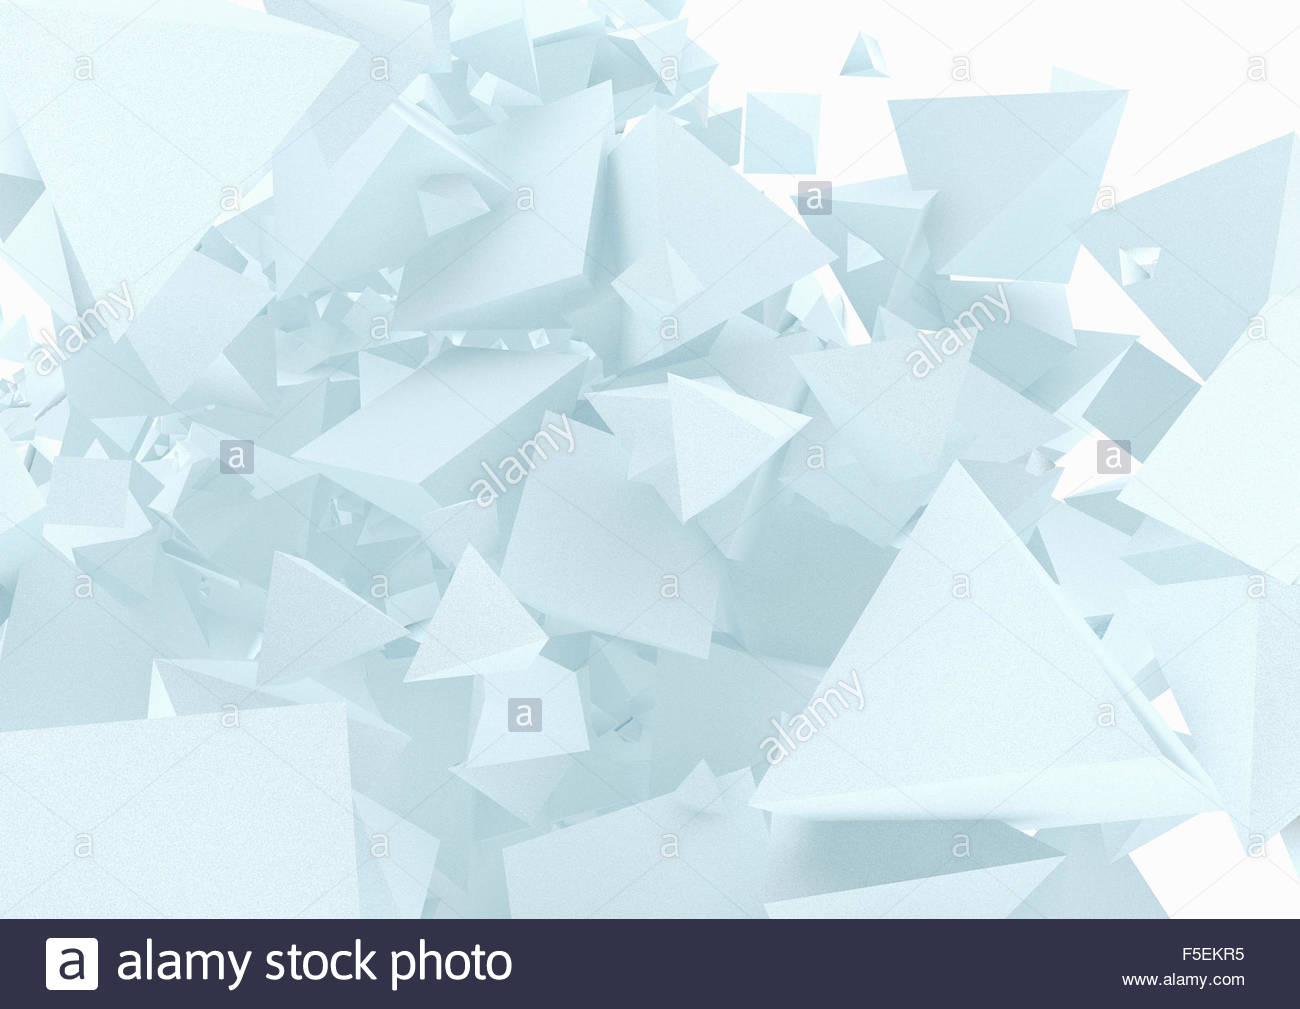 Abstract chaotic pile of three dimensional pyramid shapes - Stock Image